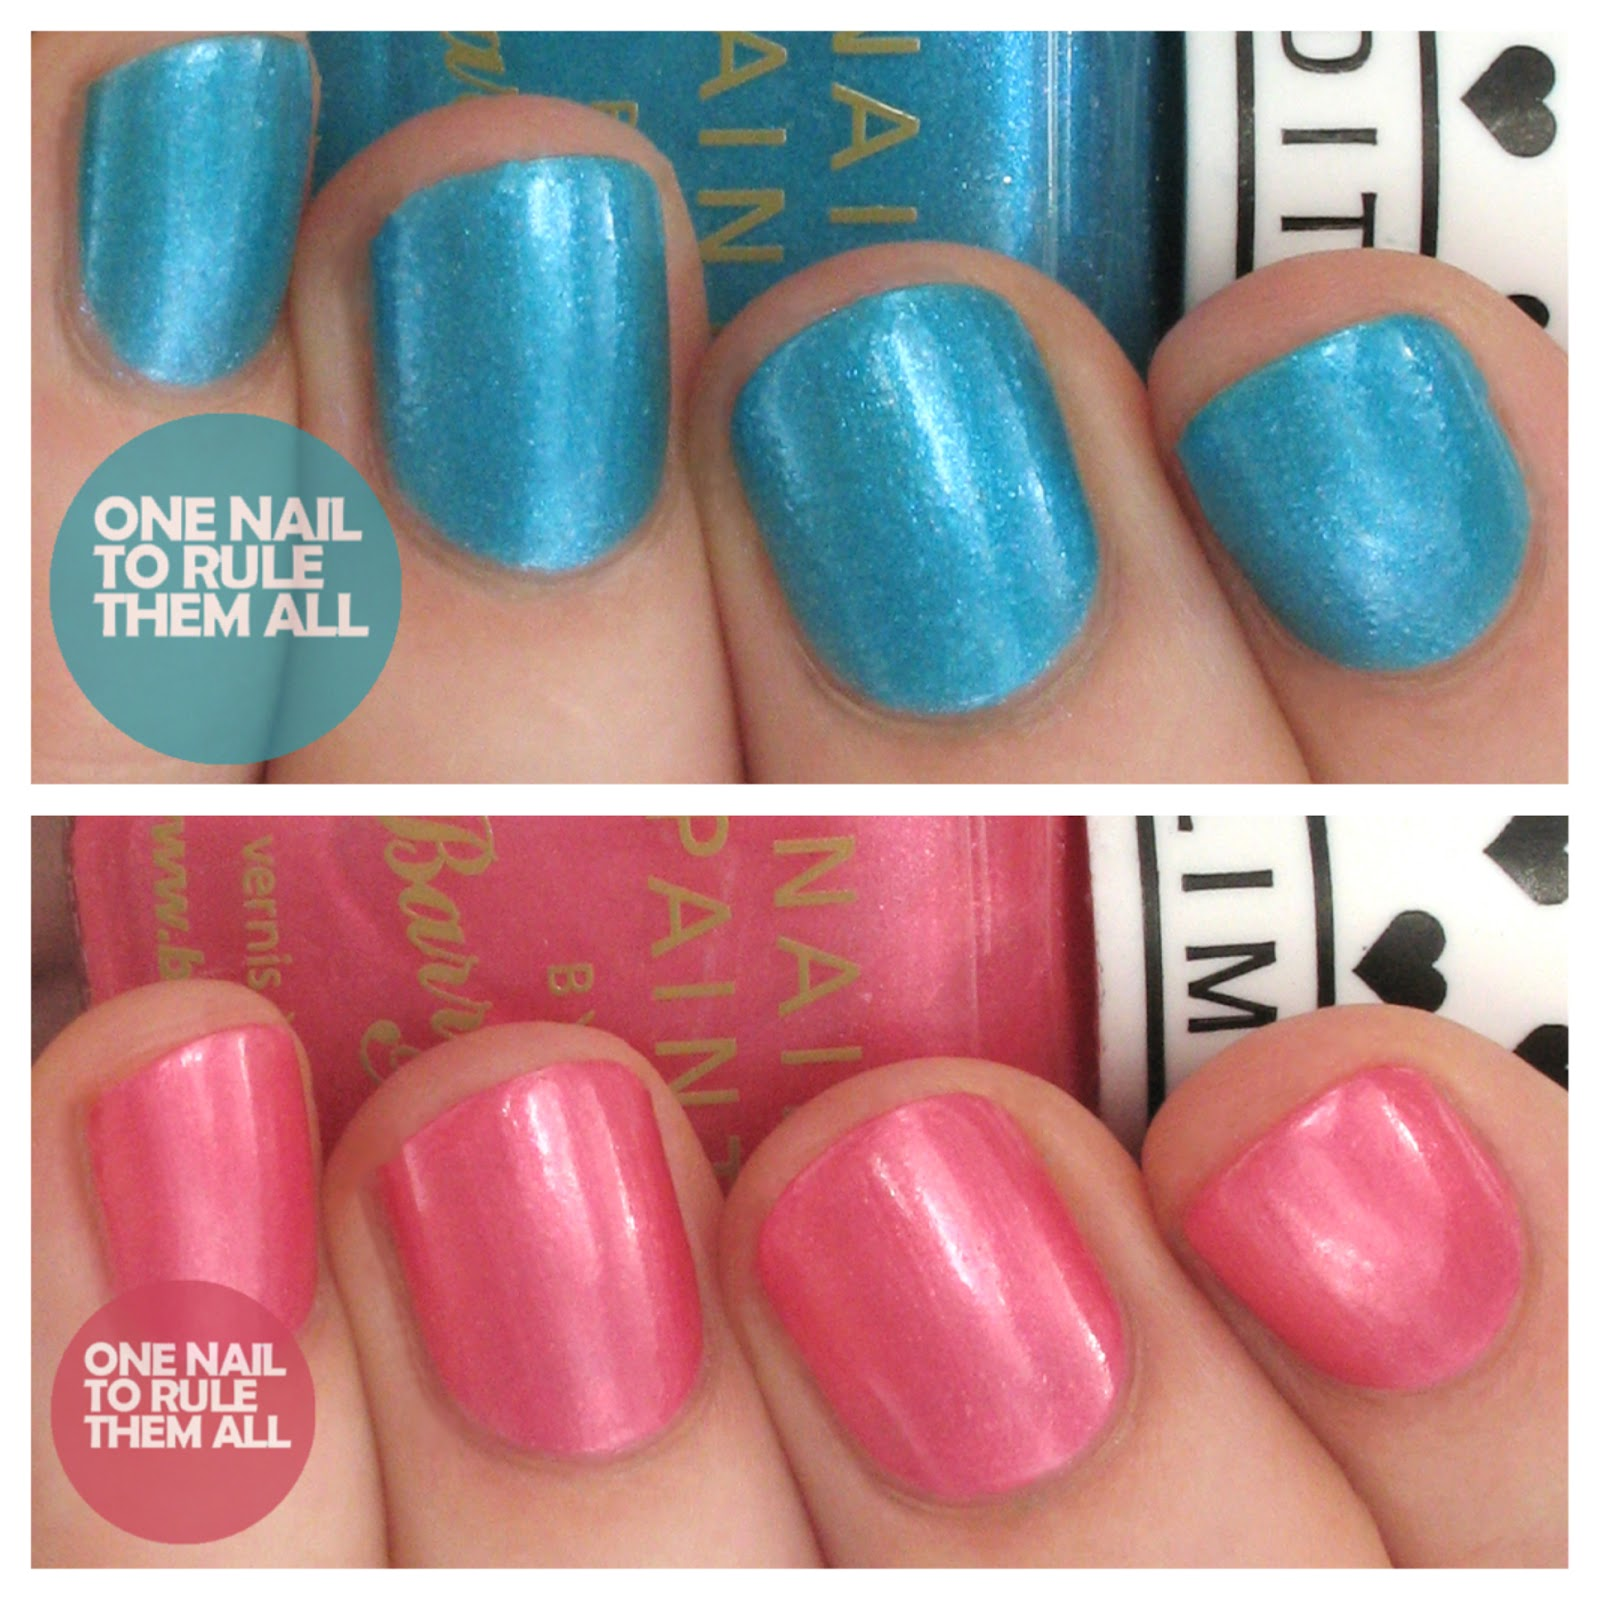 One nail to rule them all barry m summer 2014 limited edition one nail to rule them all barry m summer 2014 limited edition nail polish for superdrug prinsesfo Image collections